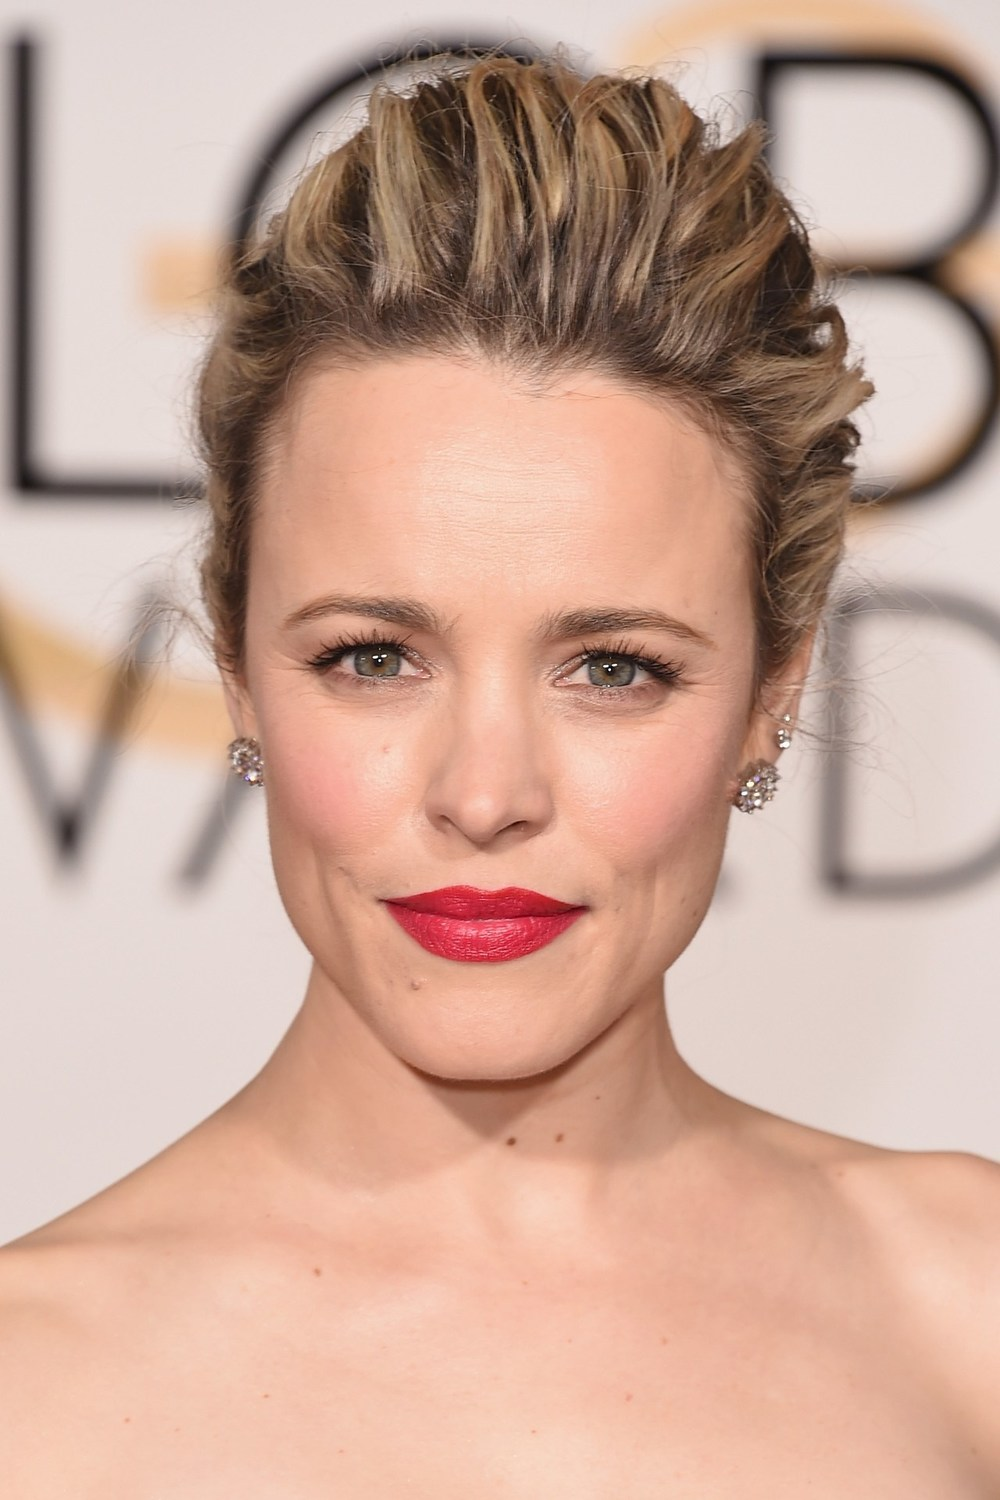 Rachel McAdams chose a swept-back up-do to emphasise her bold red lipstick.